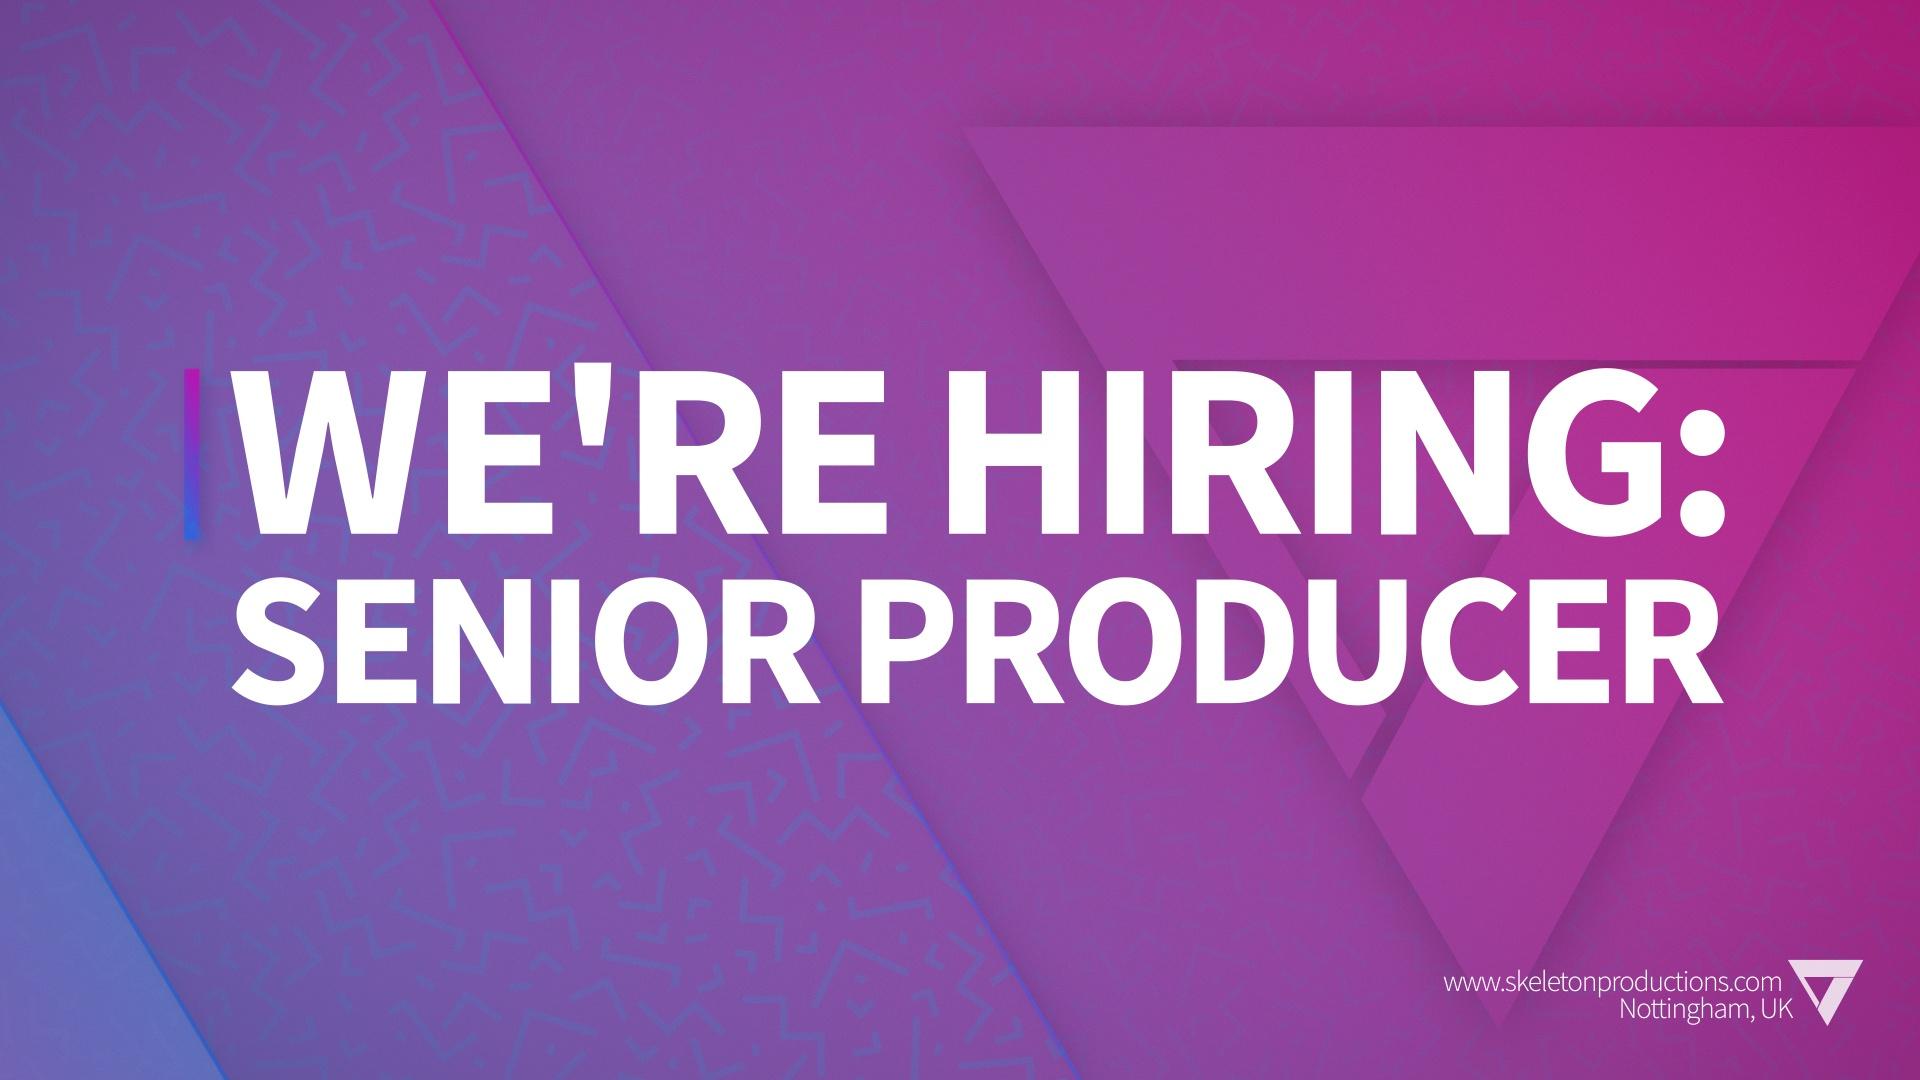 We are hiring a Senior Producer